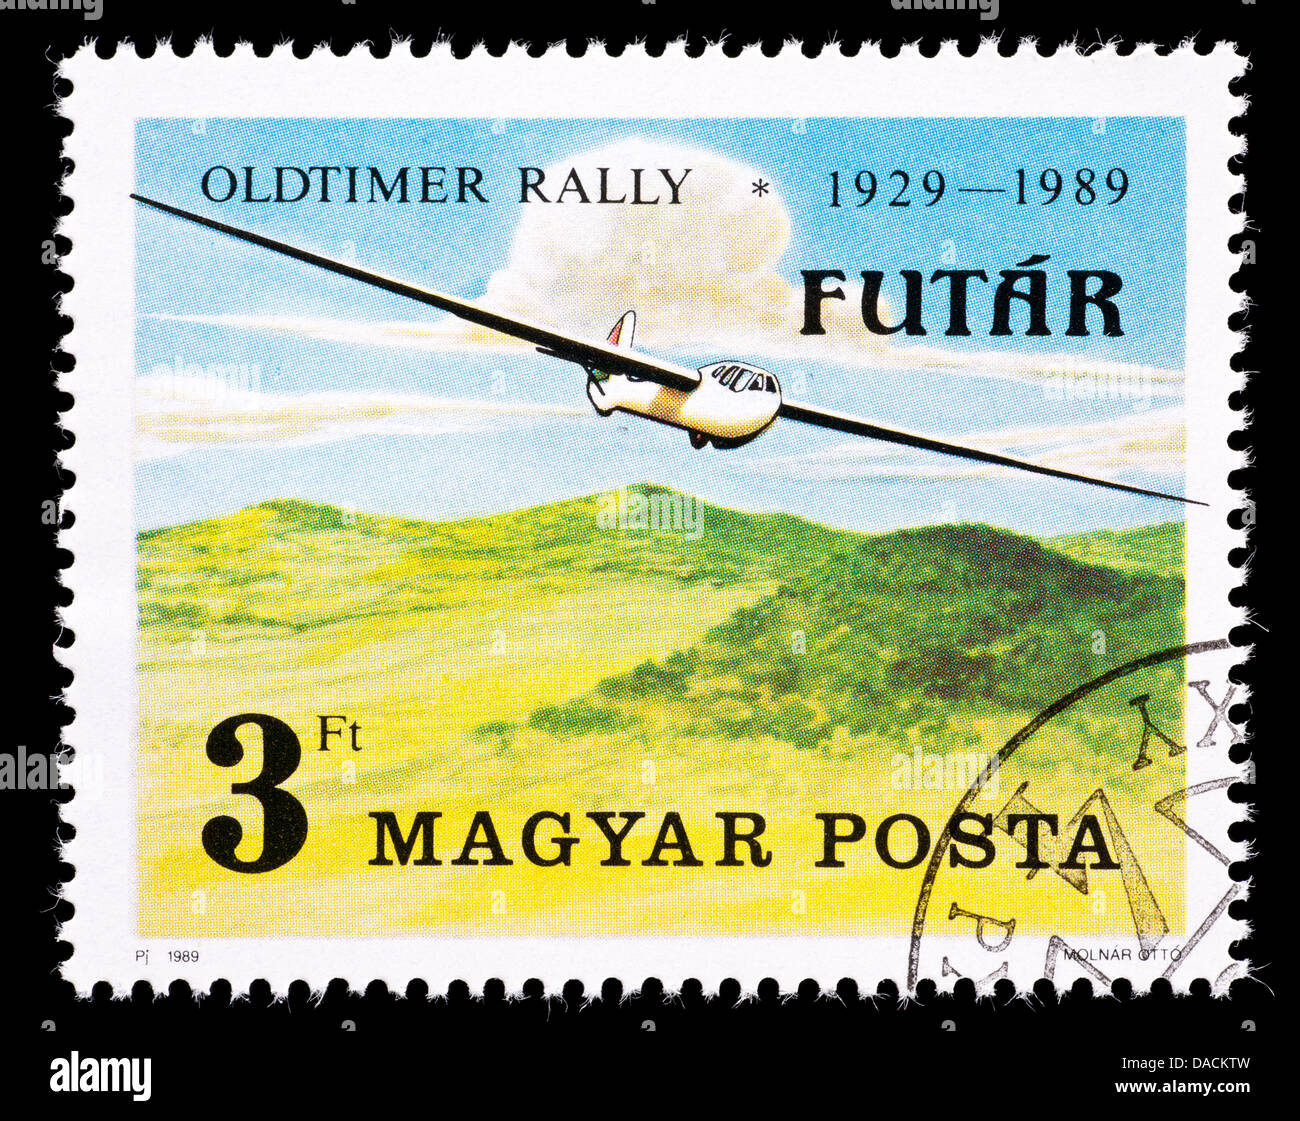 Postage stamp from Hungary depicting a glider, issued for the 17'th International Oldtimers Rally, Budakeszi - Stock Image